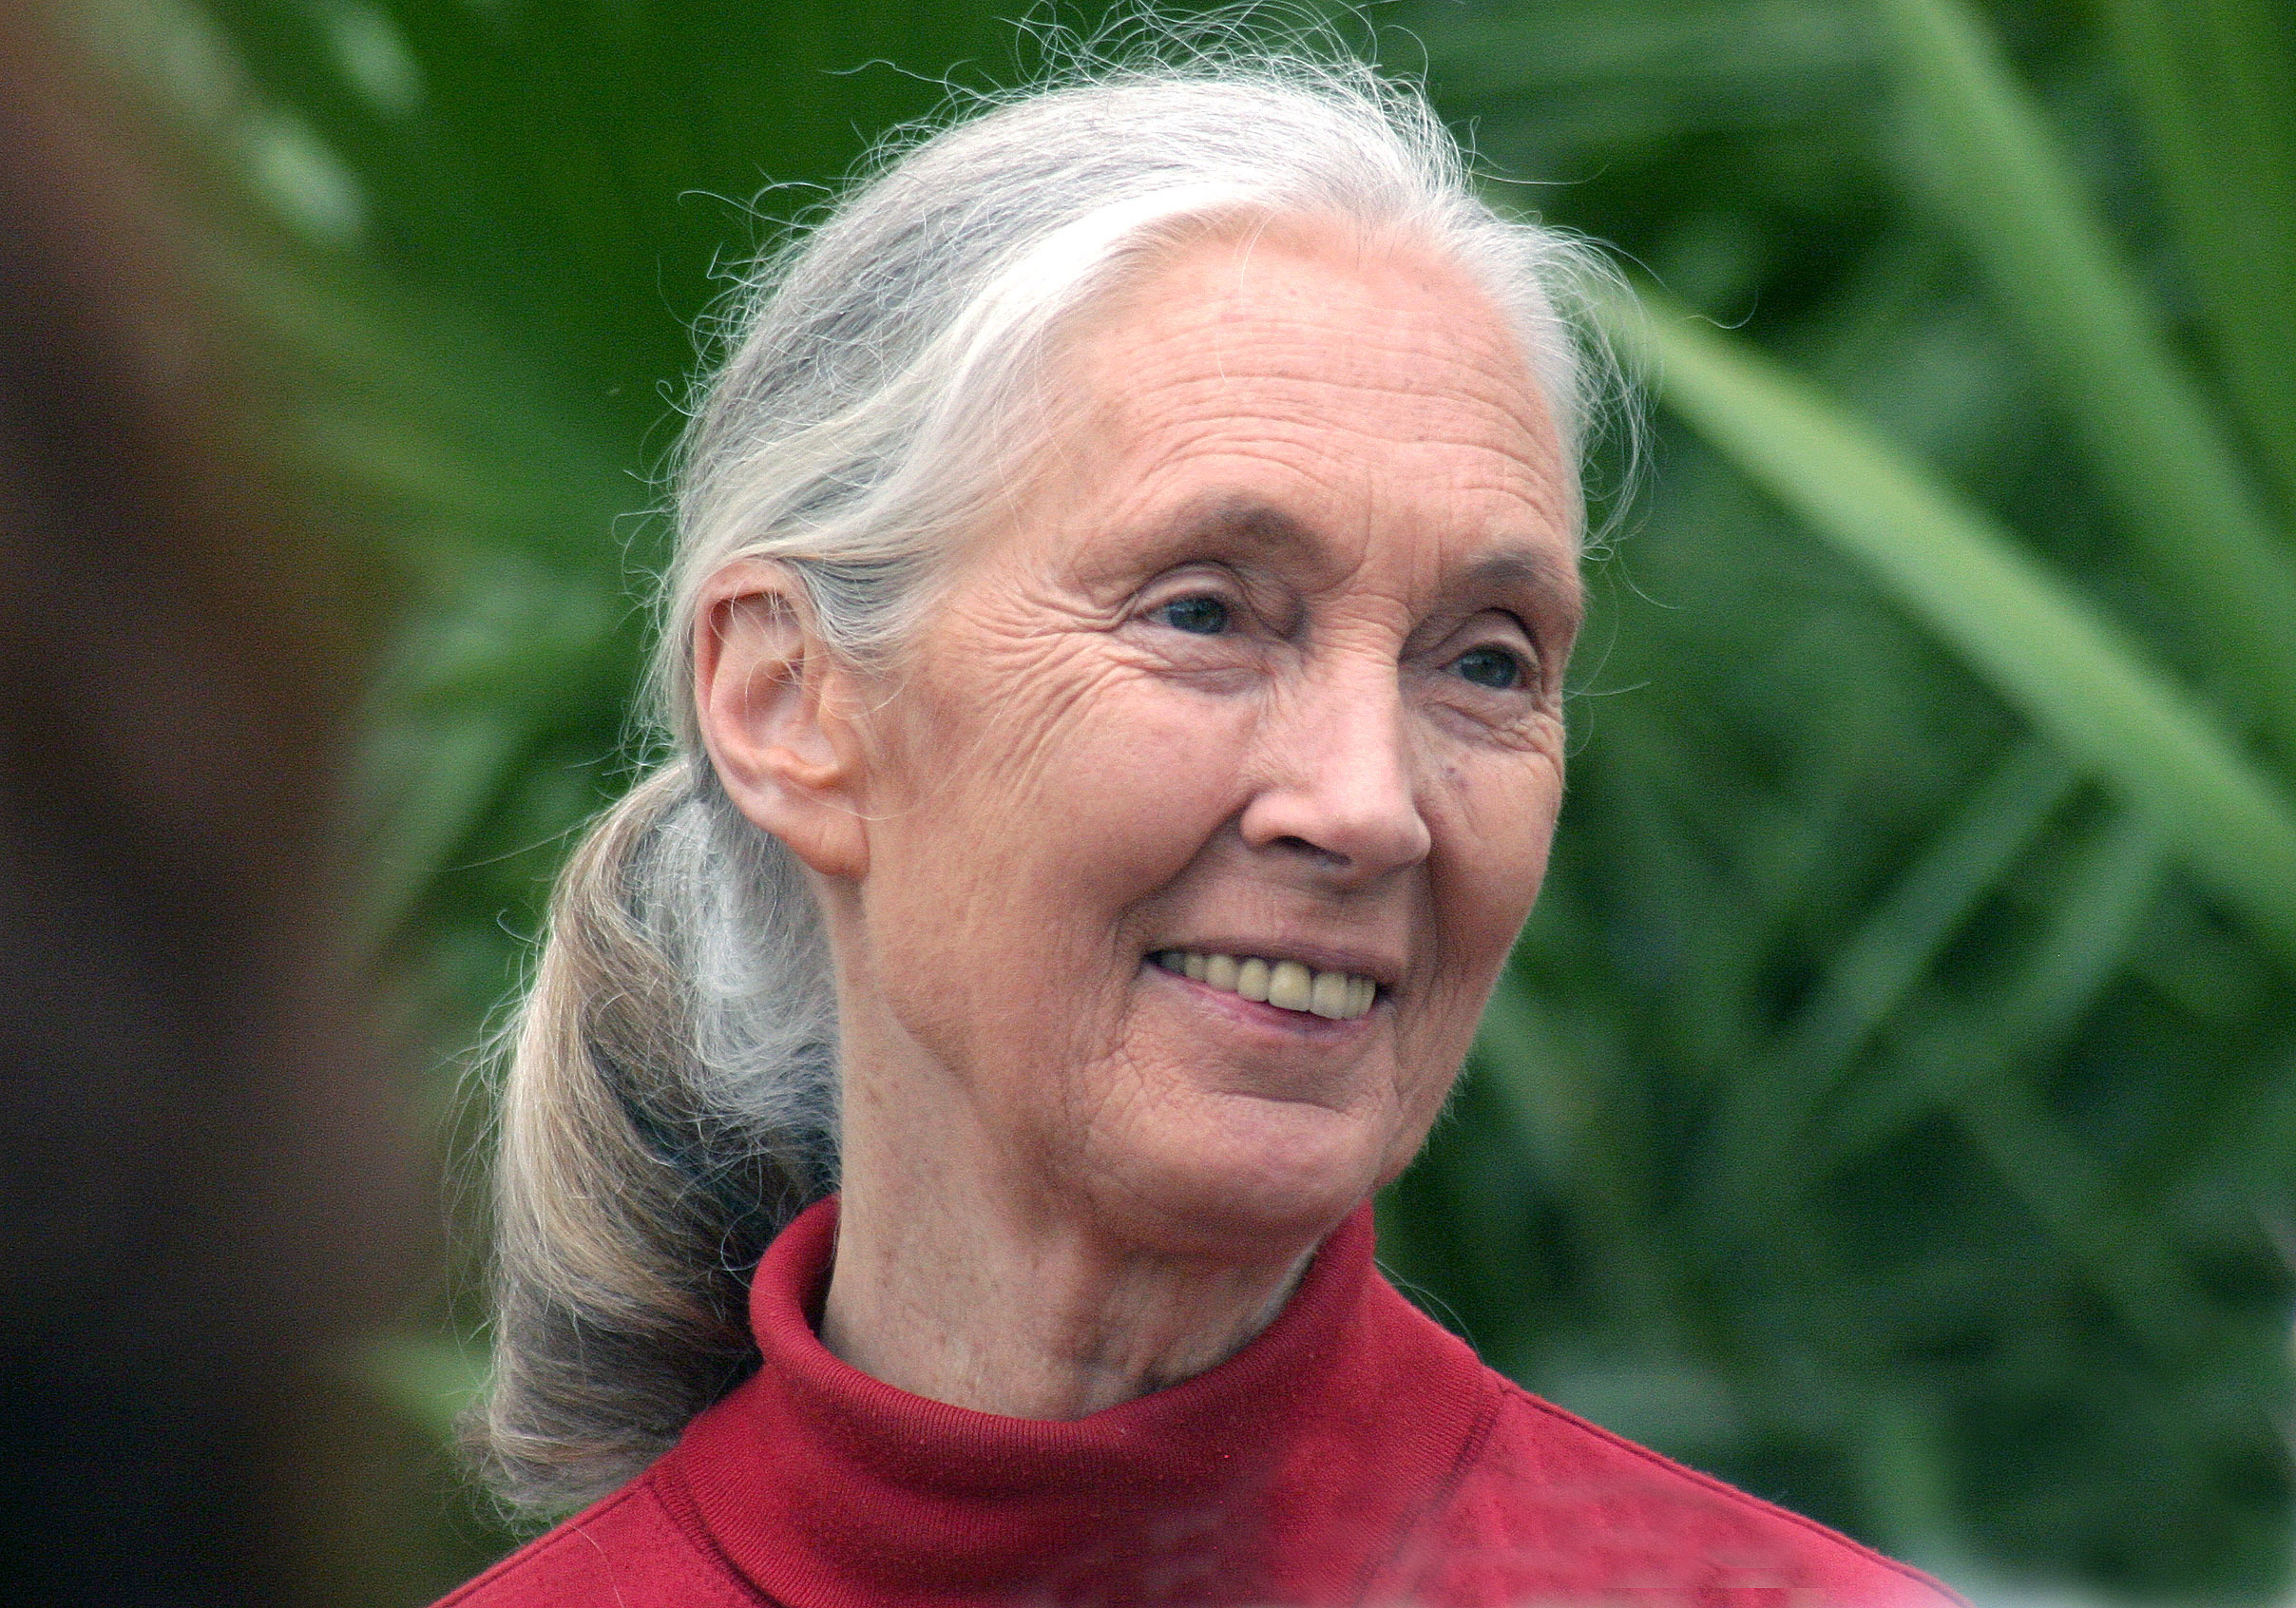 Public Lecture By Jane Goodall